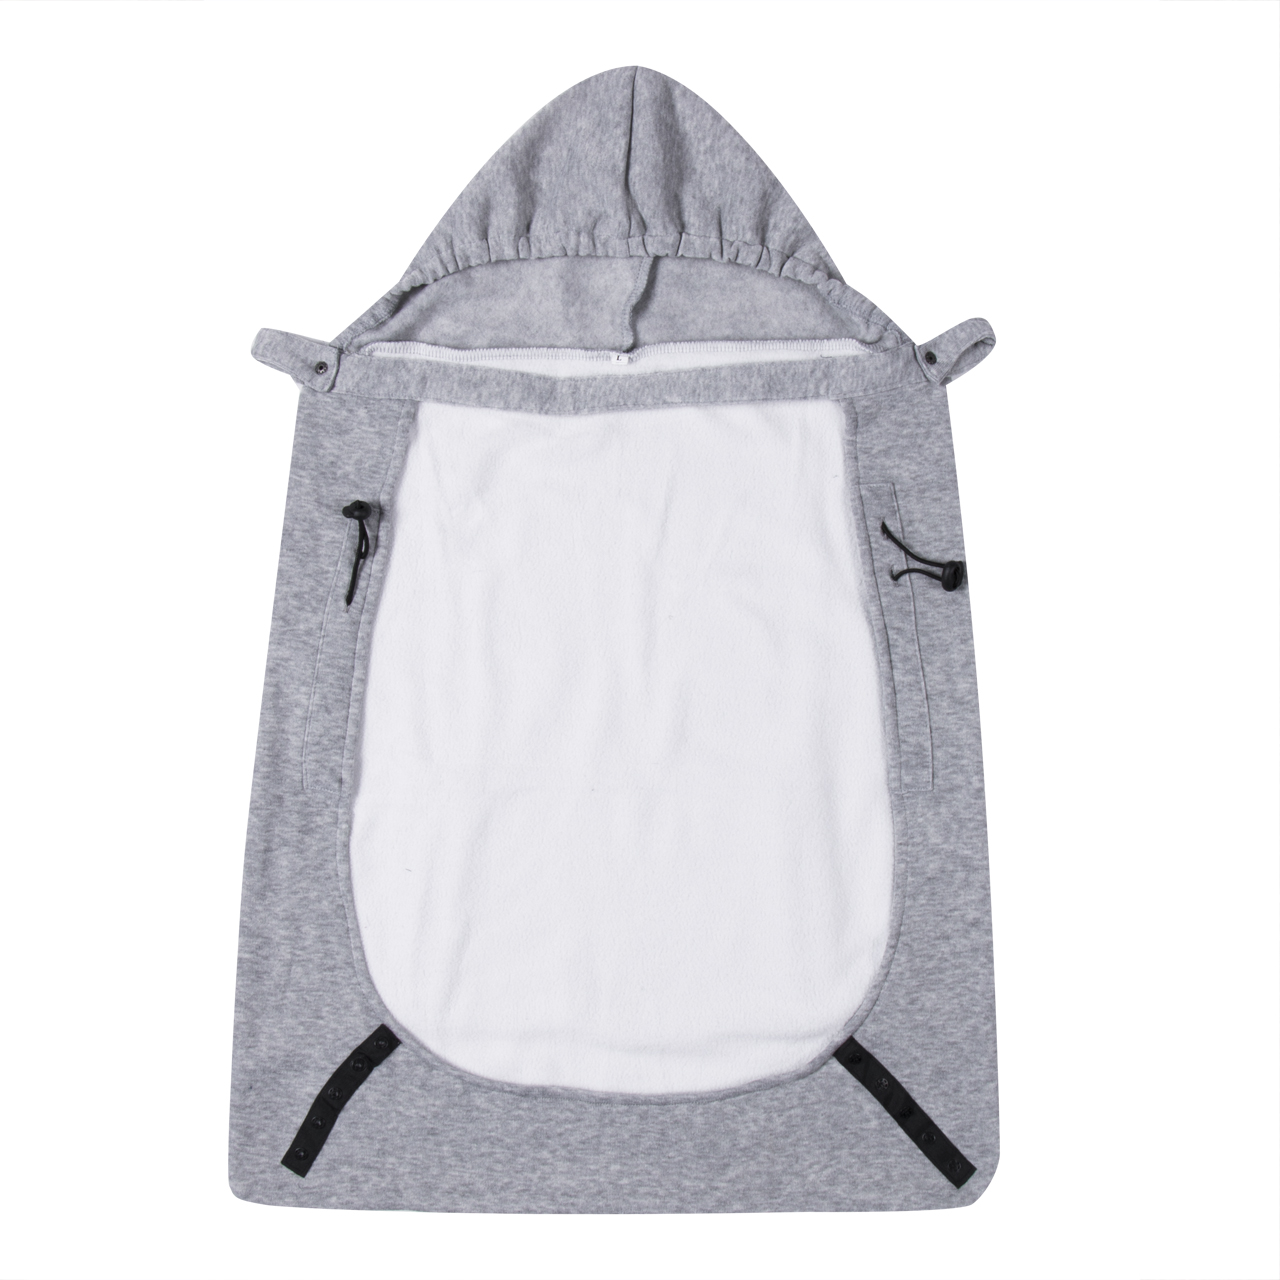 Open-Minded 2018 Canis Gray Baby Warm Cover Windproof Cloak Blanket Baby Carrier Funtional Winter Cover Fashion New Ss 100% Guarantee Activity & Gear